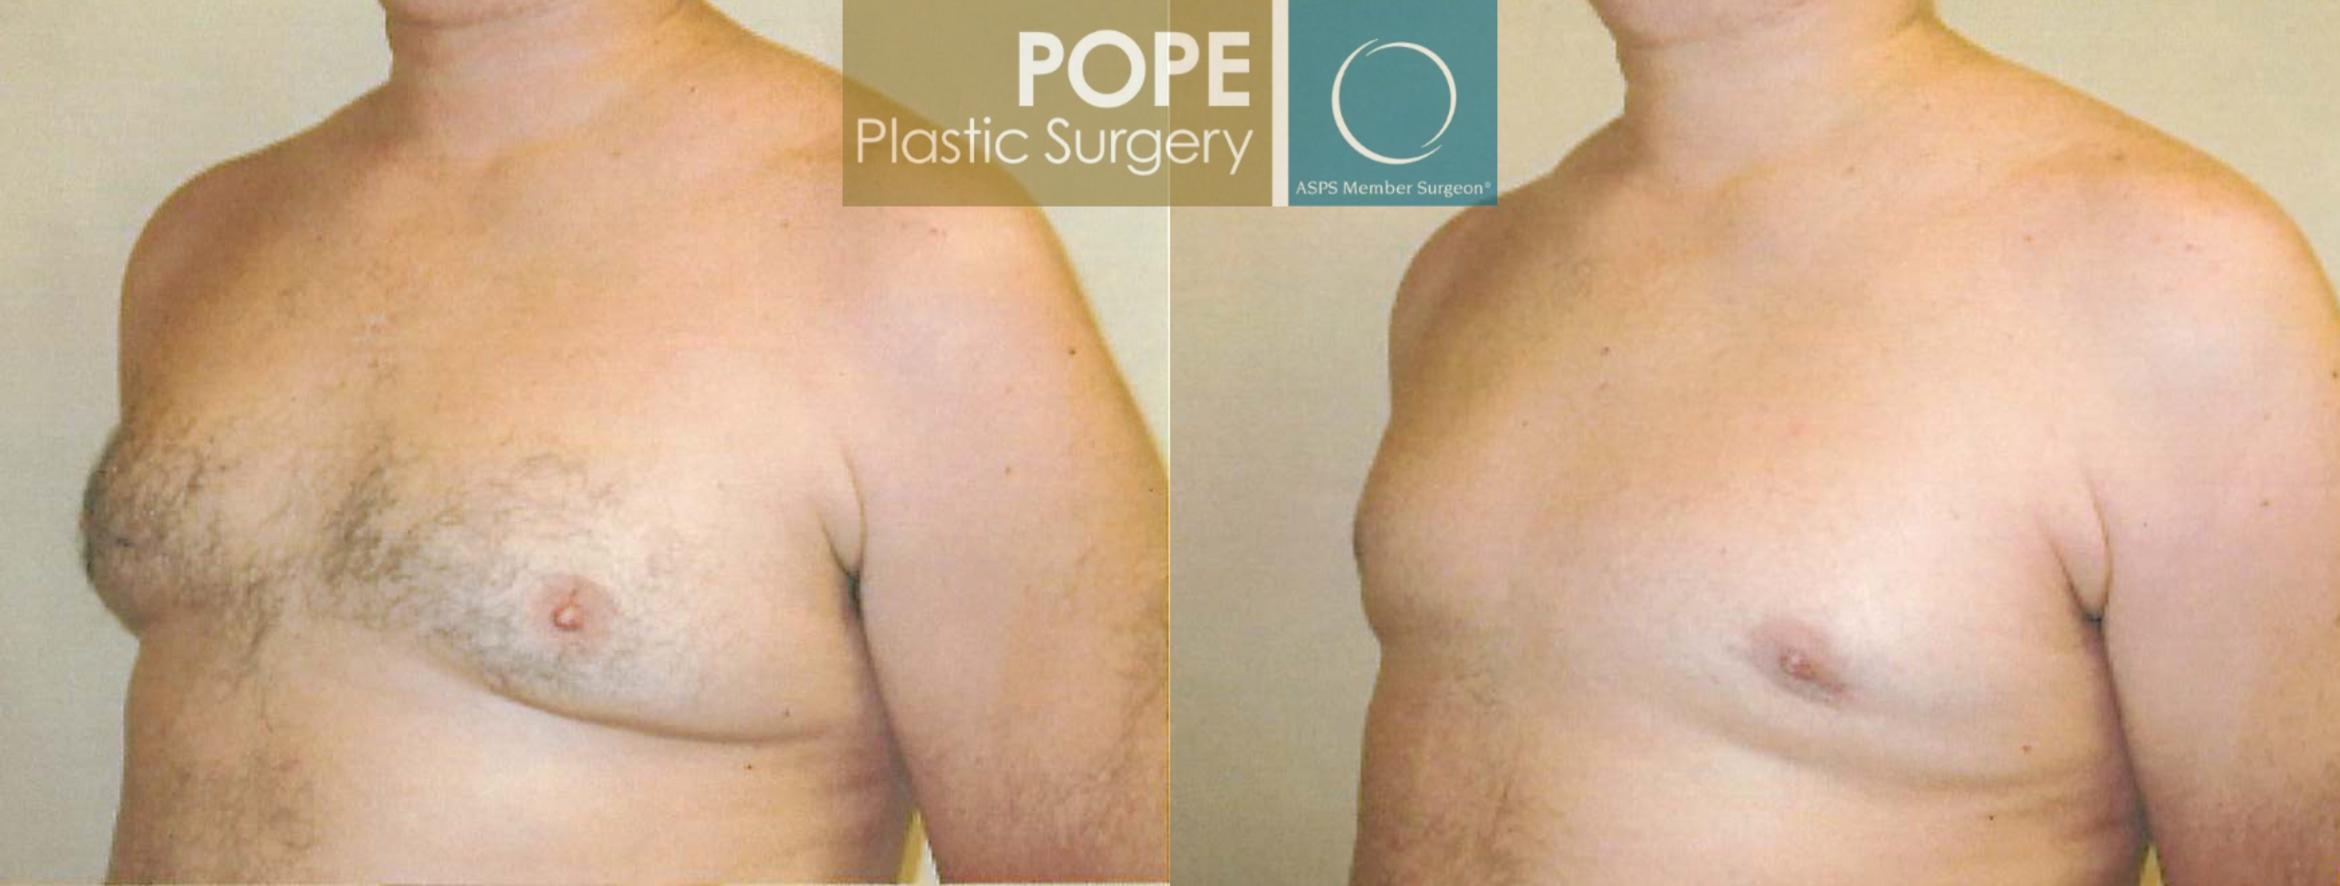 Male Breast Reduction Case 102 Before & After View #2 | Orlando, FL | Pope Plastic Surgery